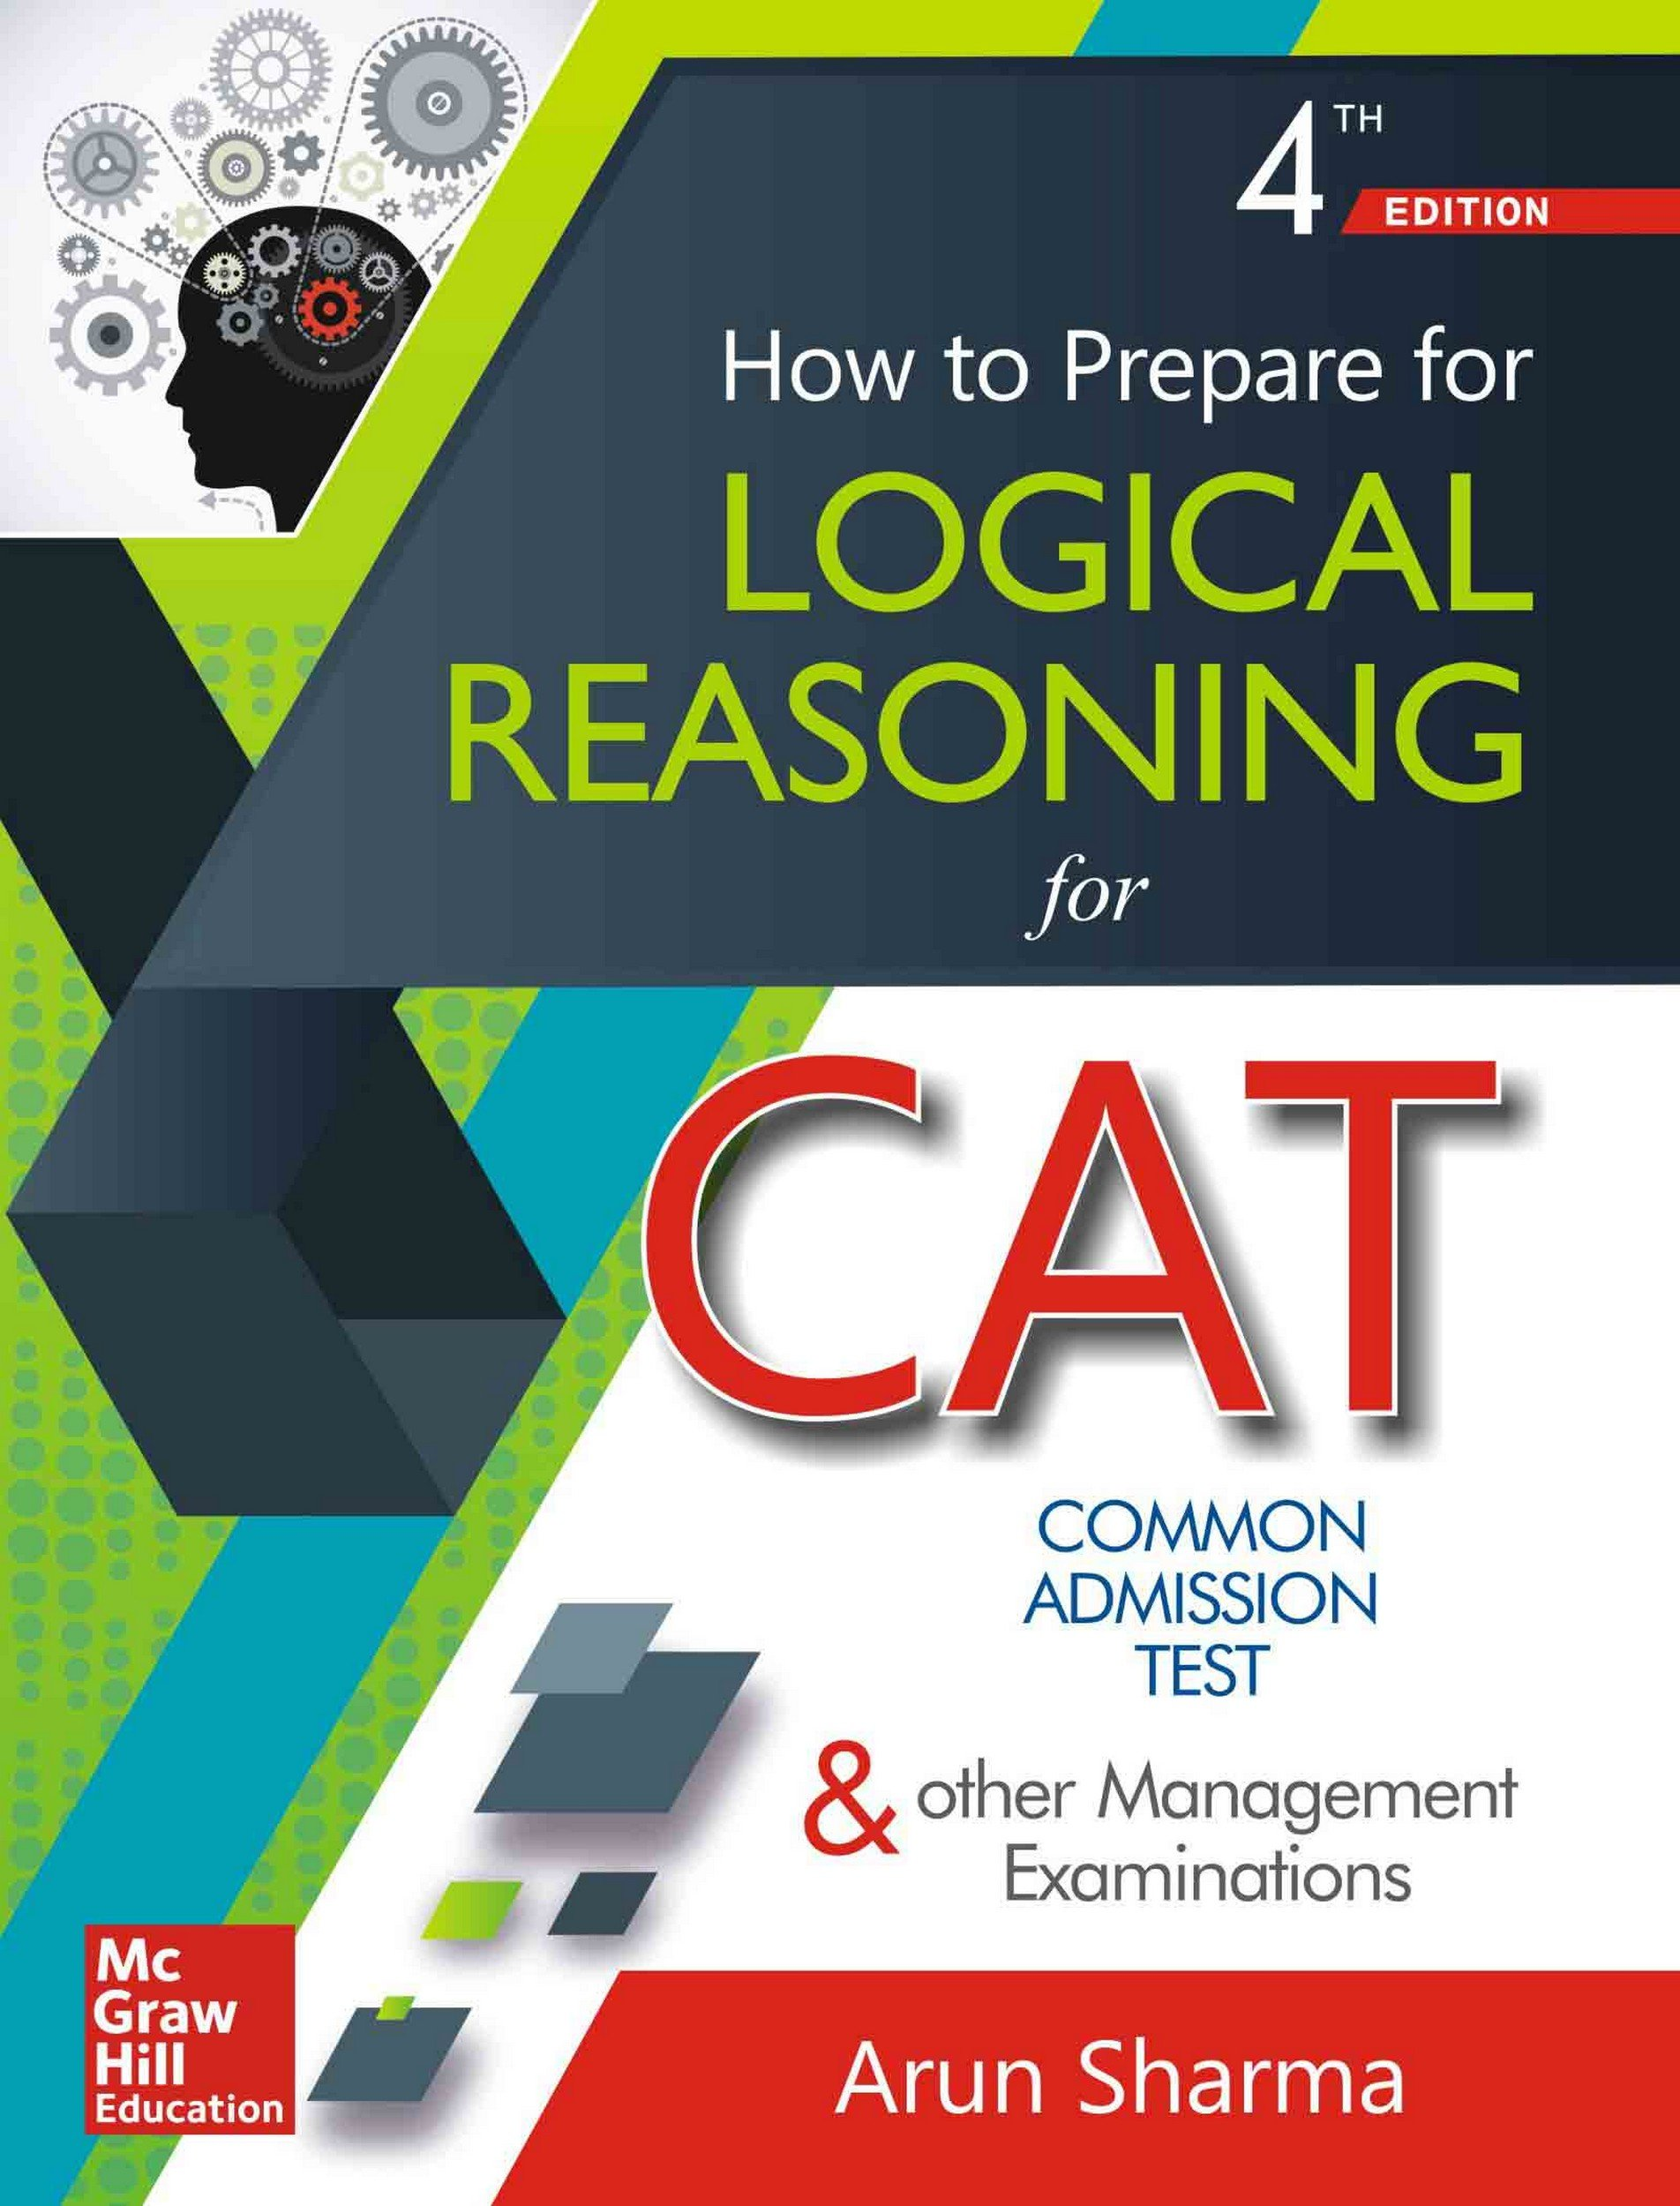 How to Prepare for Logical Reasoning for CAT Paperback – 31 July 2017